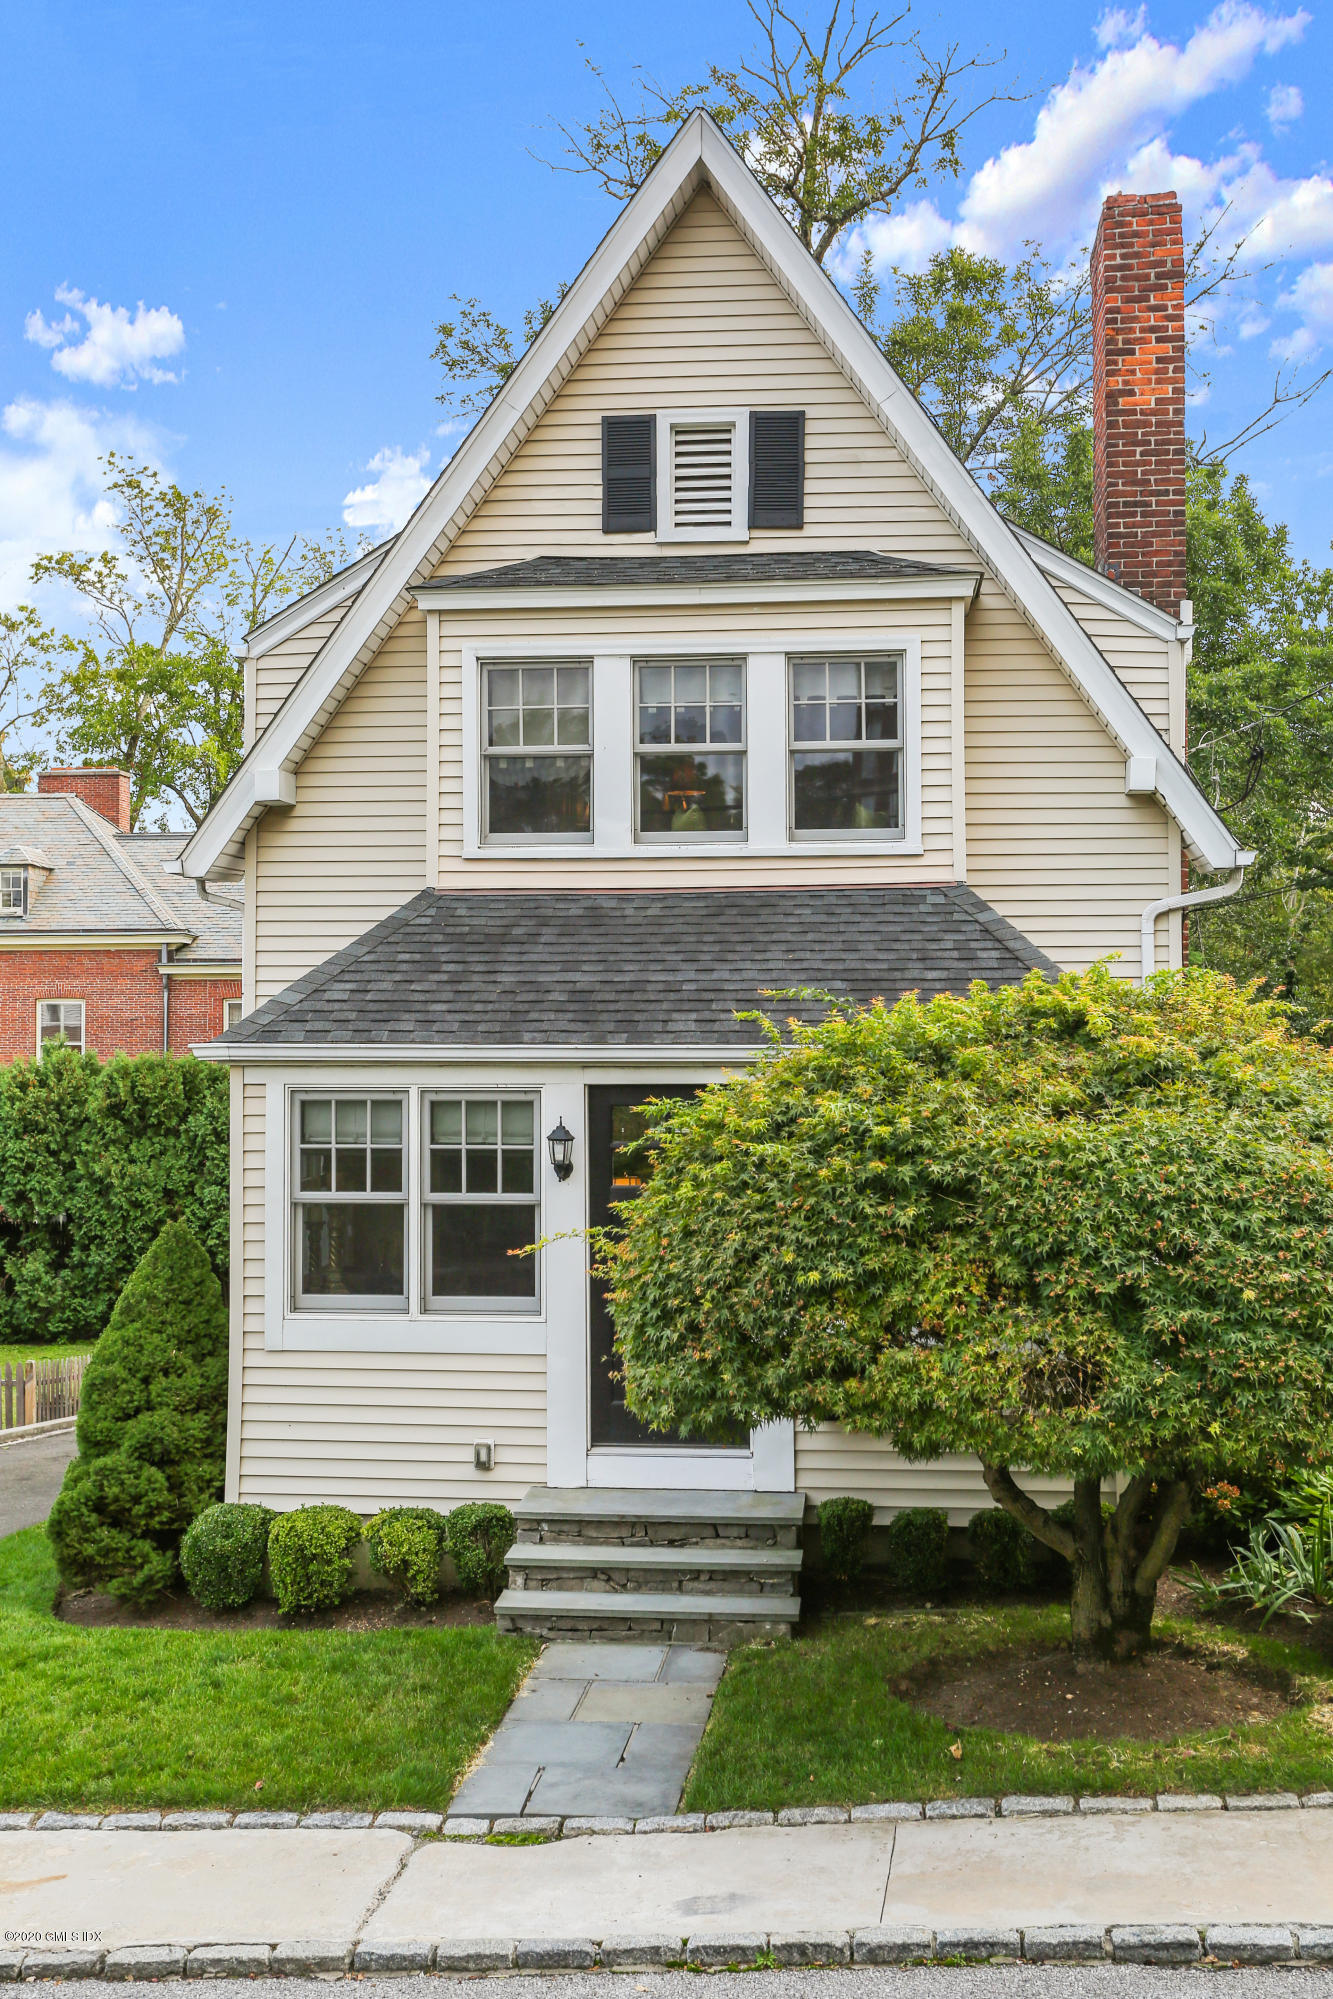 9 Bolling Place, Greenwich, Connecticut 06830, 3 Bedrooms Bedrooms, ,1 BathroomBathrooms,Single family,For sale,Bolling,111210